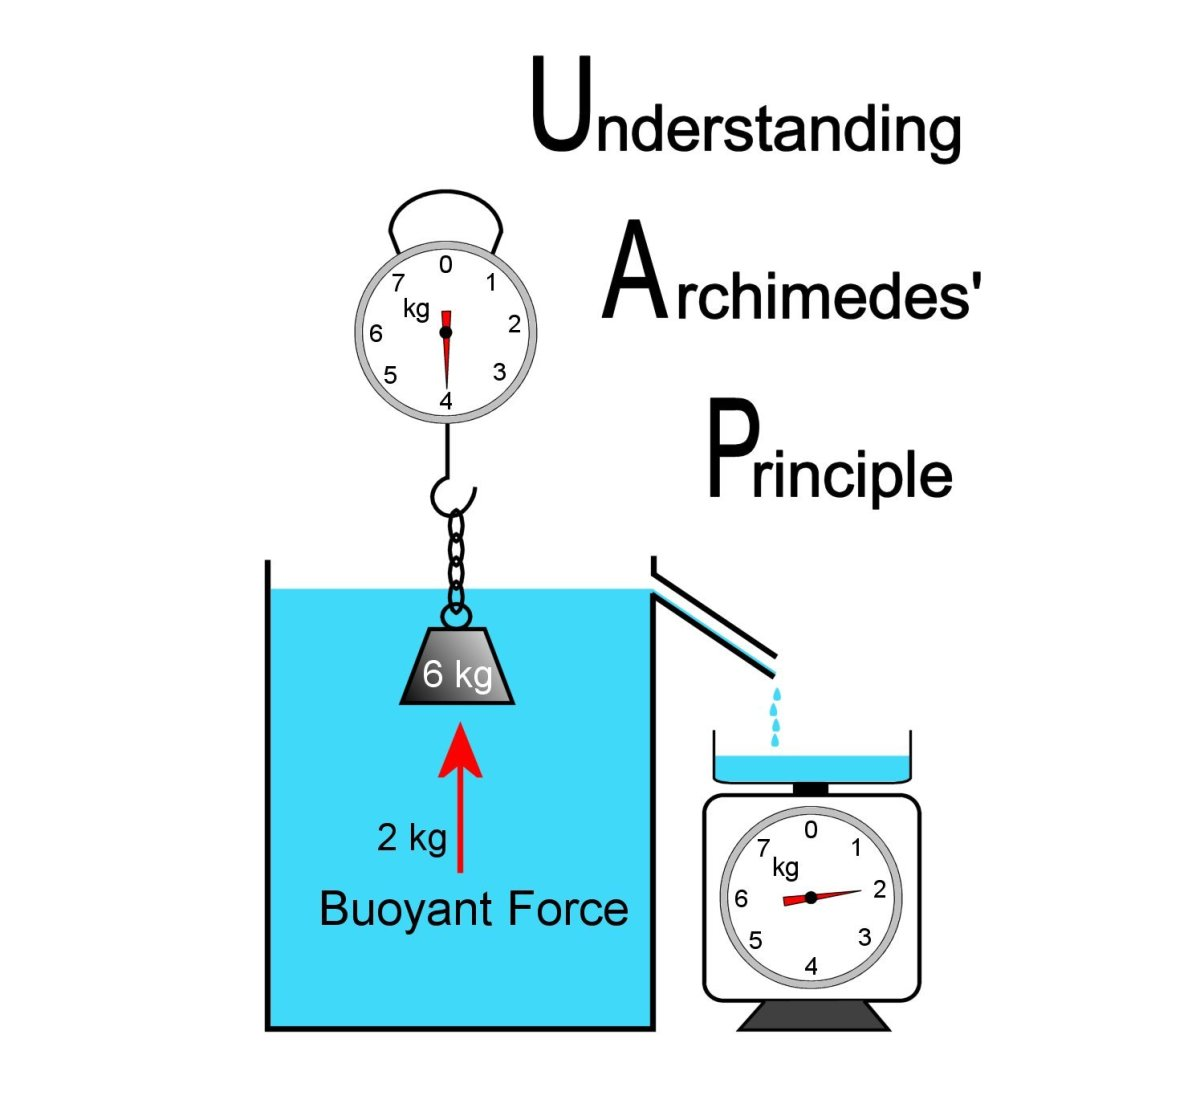 Archimedes' Principle Experiments and Buoyant Force